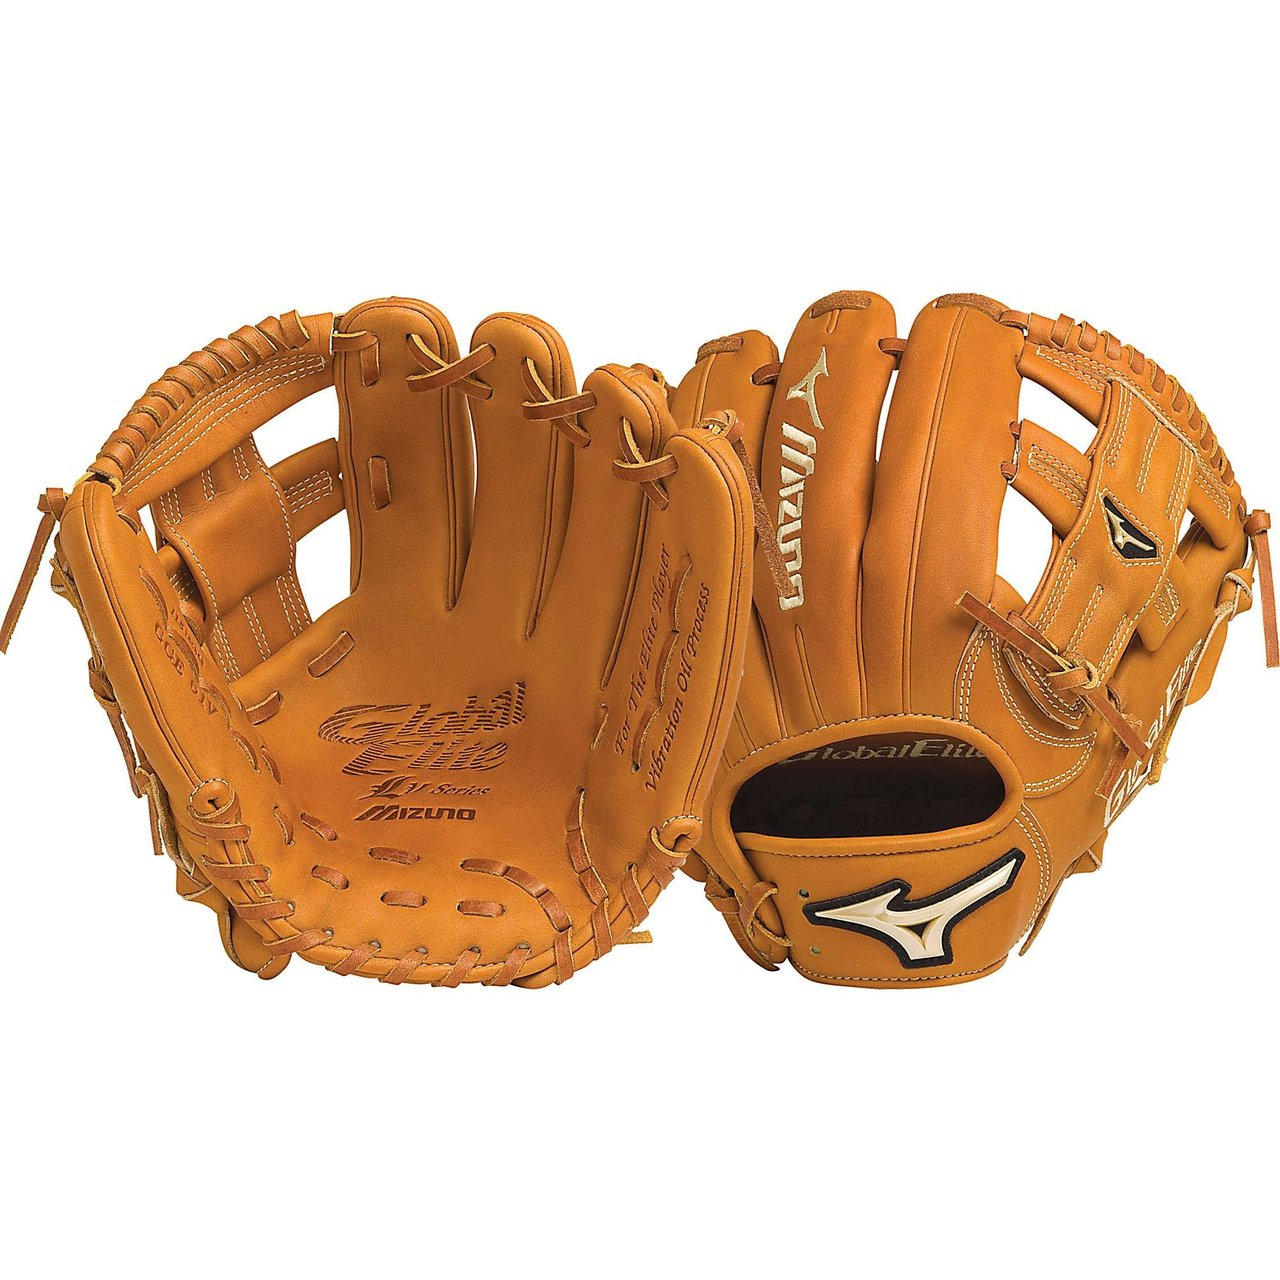 mizuno-gge61v-global-elite-vop-11-5-infield-baseball-glove-right-handed-throw GGE61V-Right Handed Throw Mizuno New Mizuno GGE61V Global Elite VOP 11.5 Infield Baseball Glove Right Handed